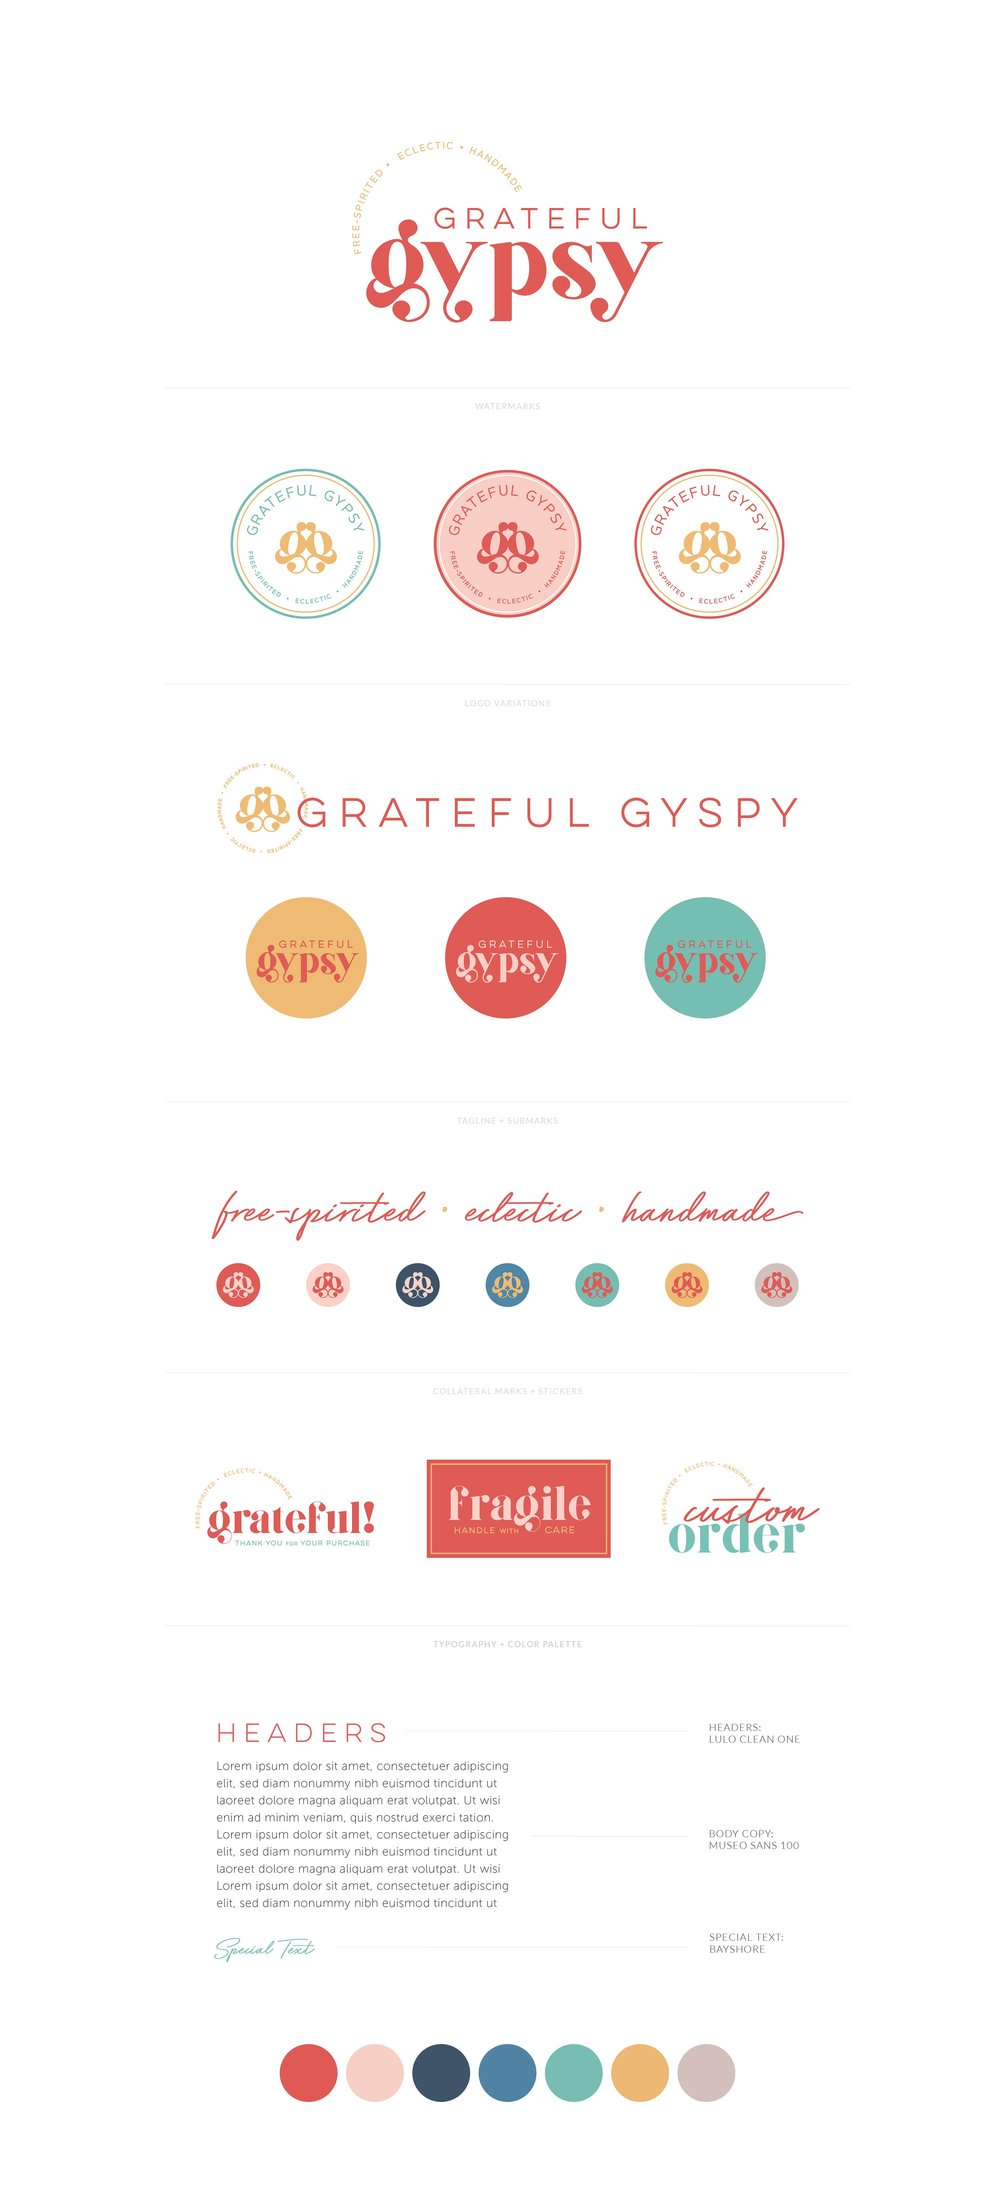 Grateful Gypsy | Free-Spirited, Eclectic, Handmade Clothing, Jewelry and Accessories | Fun, throwback, beachy and colorful logo, watermark, favicon, collateral, stickers | Branding by AllieMarie Design